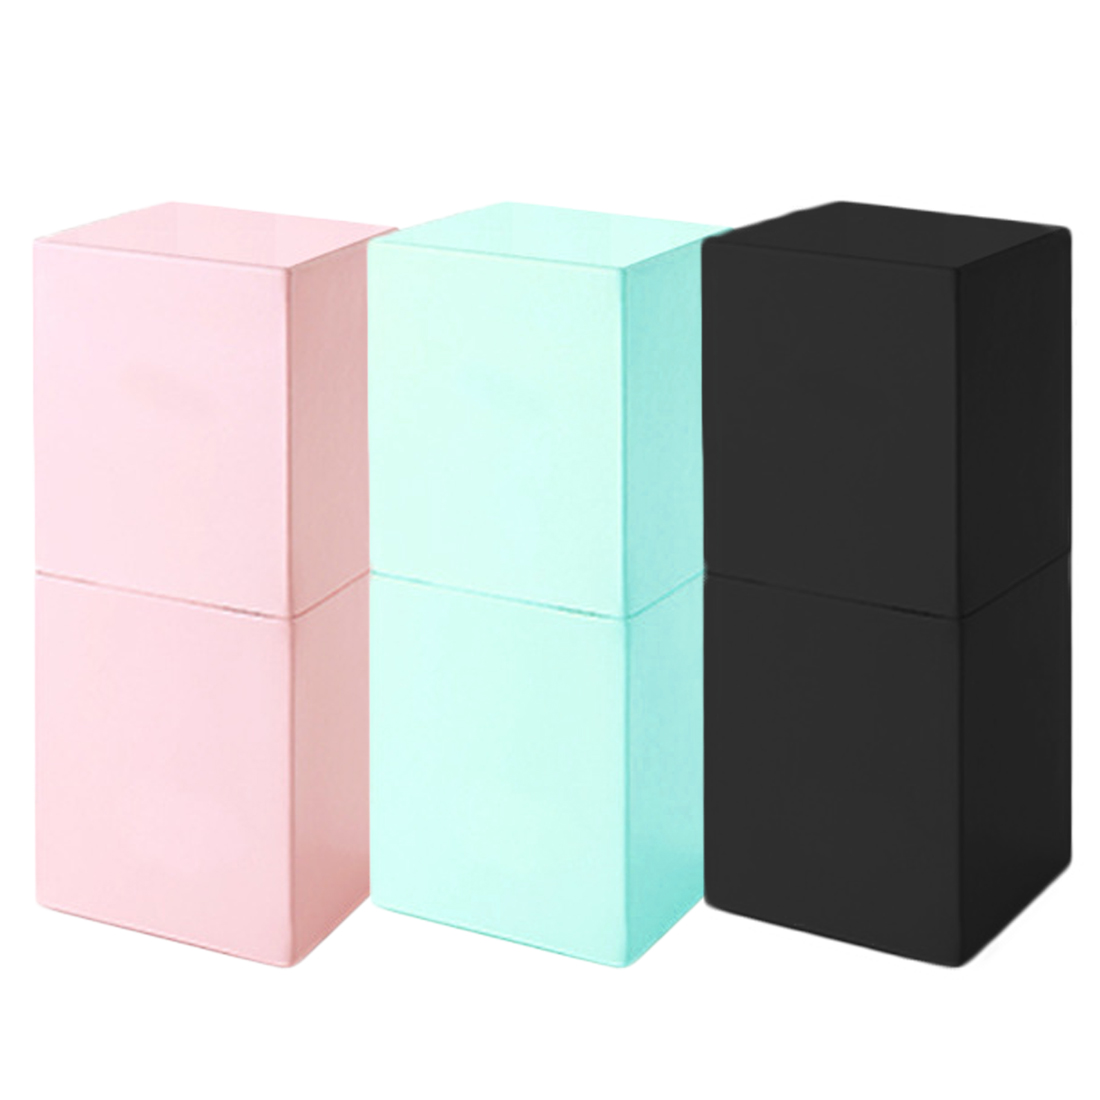 High Quality Makeup Brushes Square Magnetic Make Up Brush Pen Holder Cosmetic Tool Organizer Empty Portable PU Leather Container